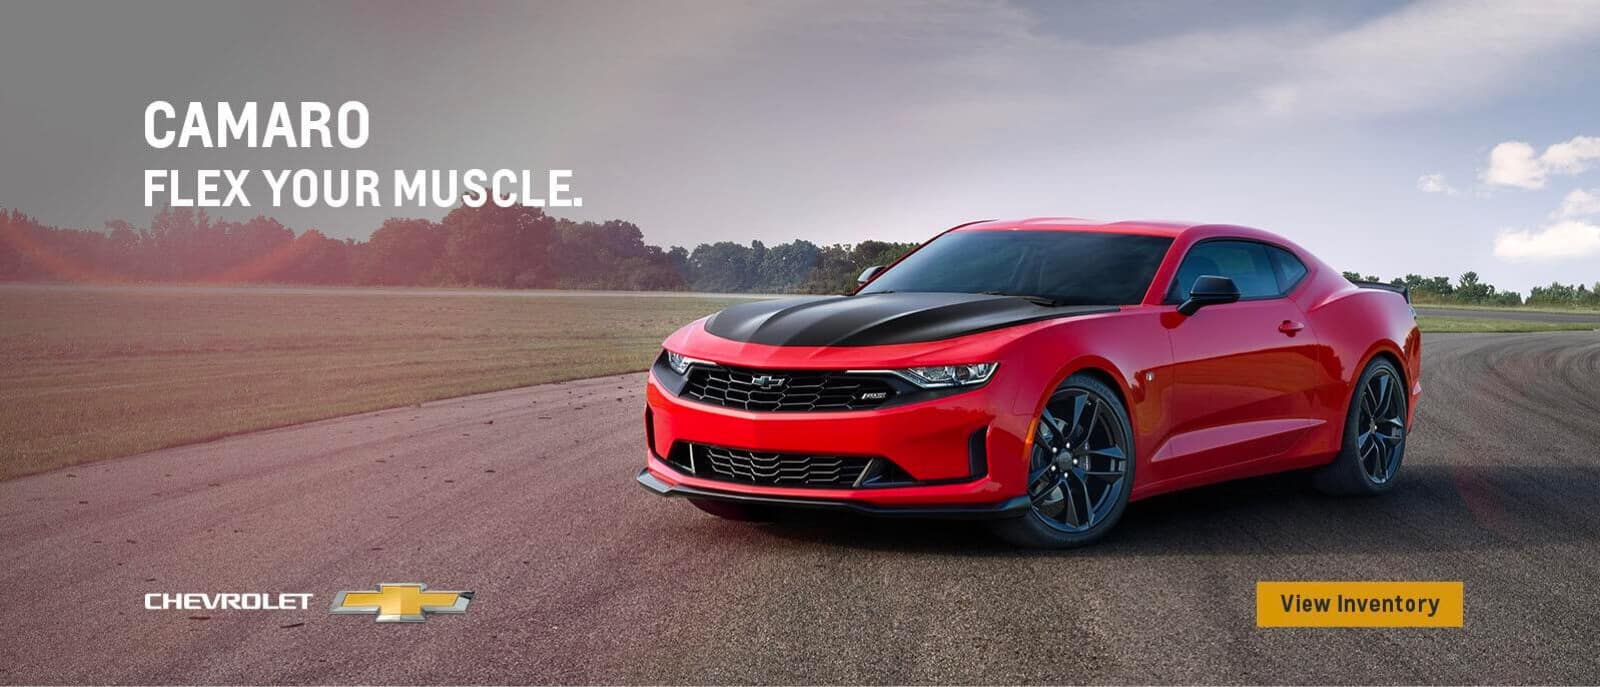 Flex Your Muscles - Red Camaro Banner